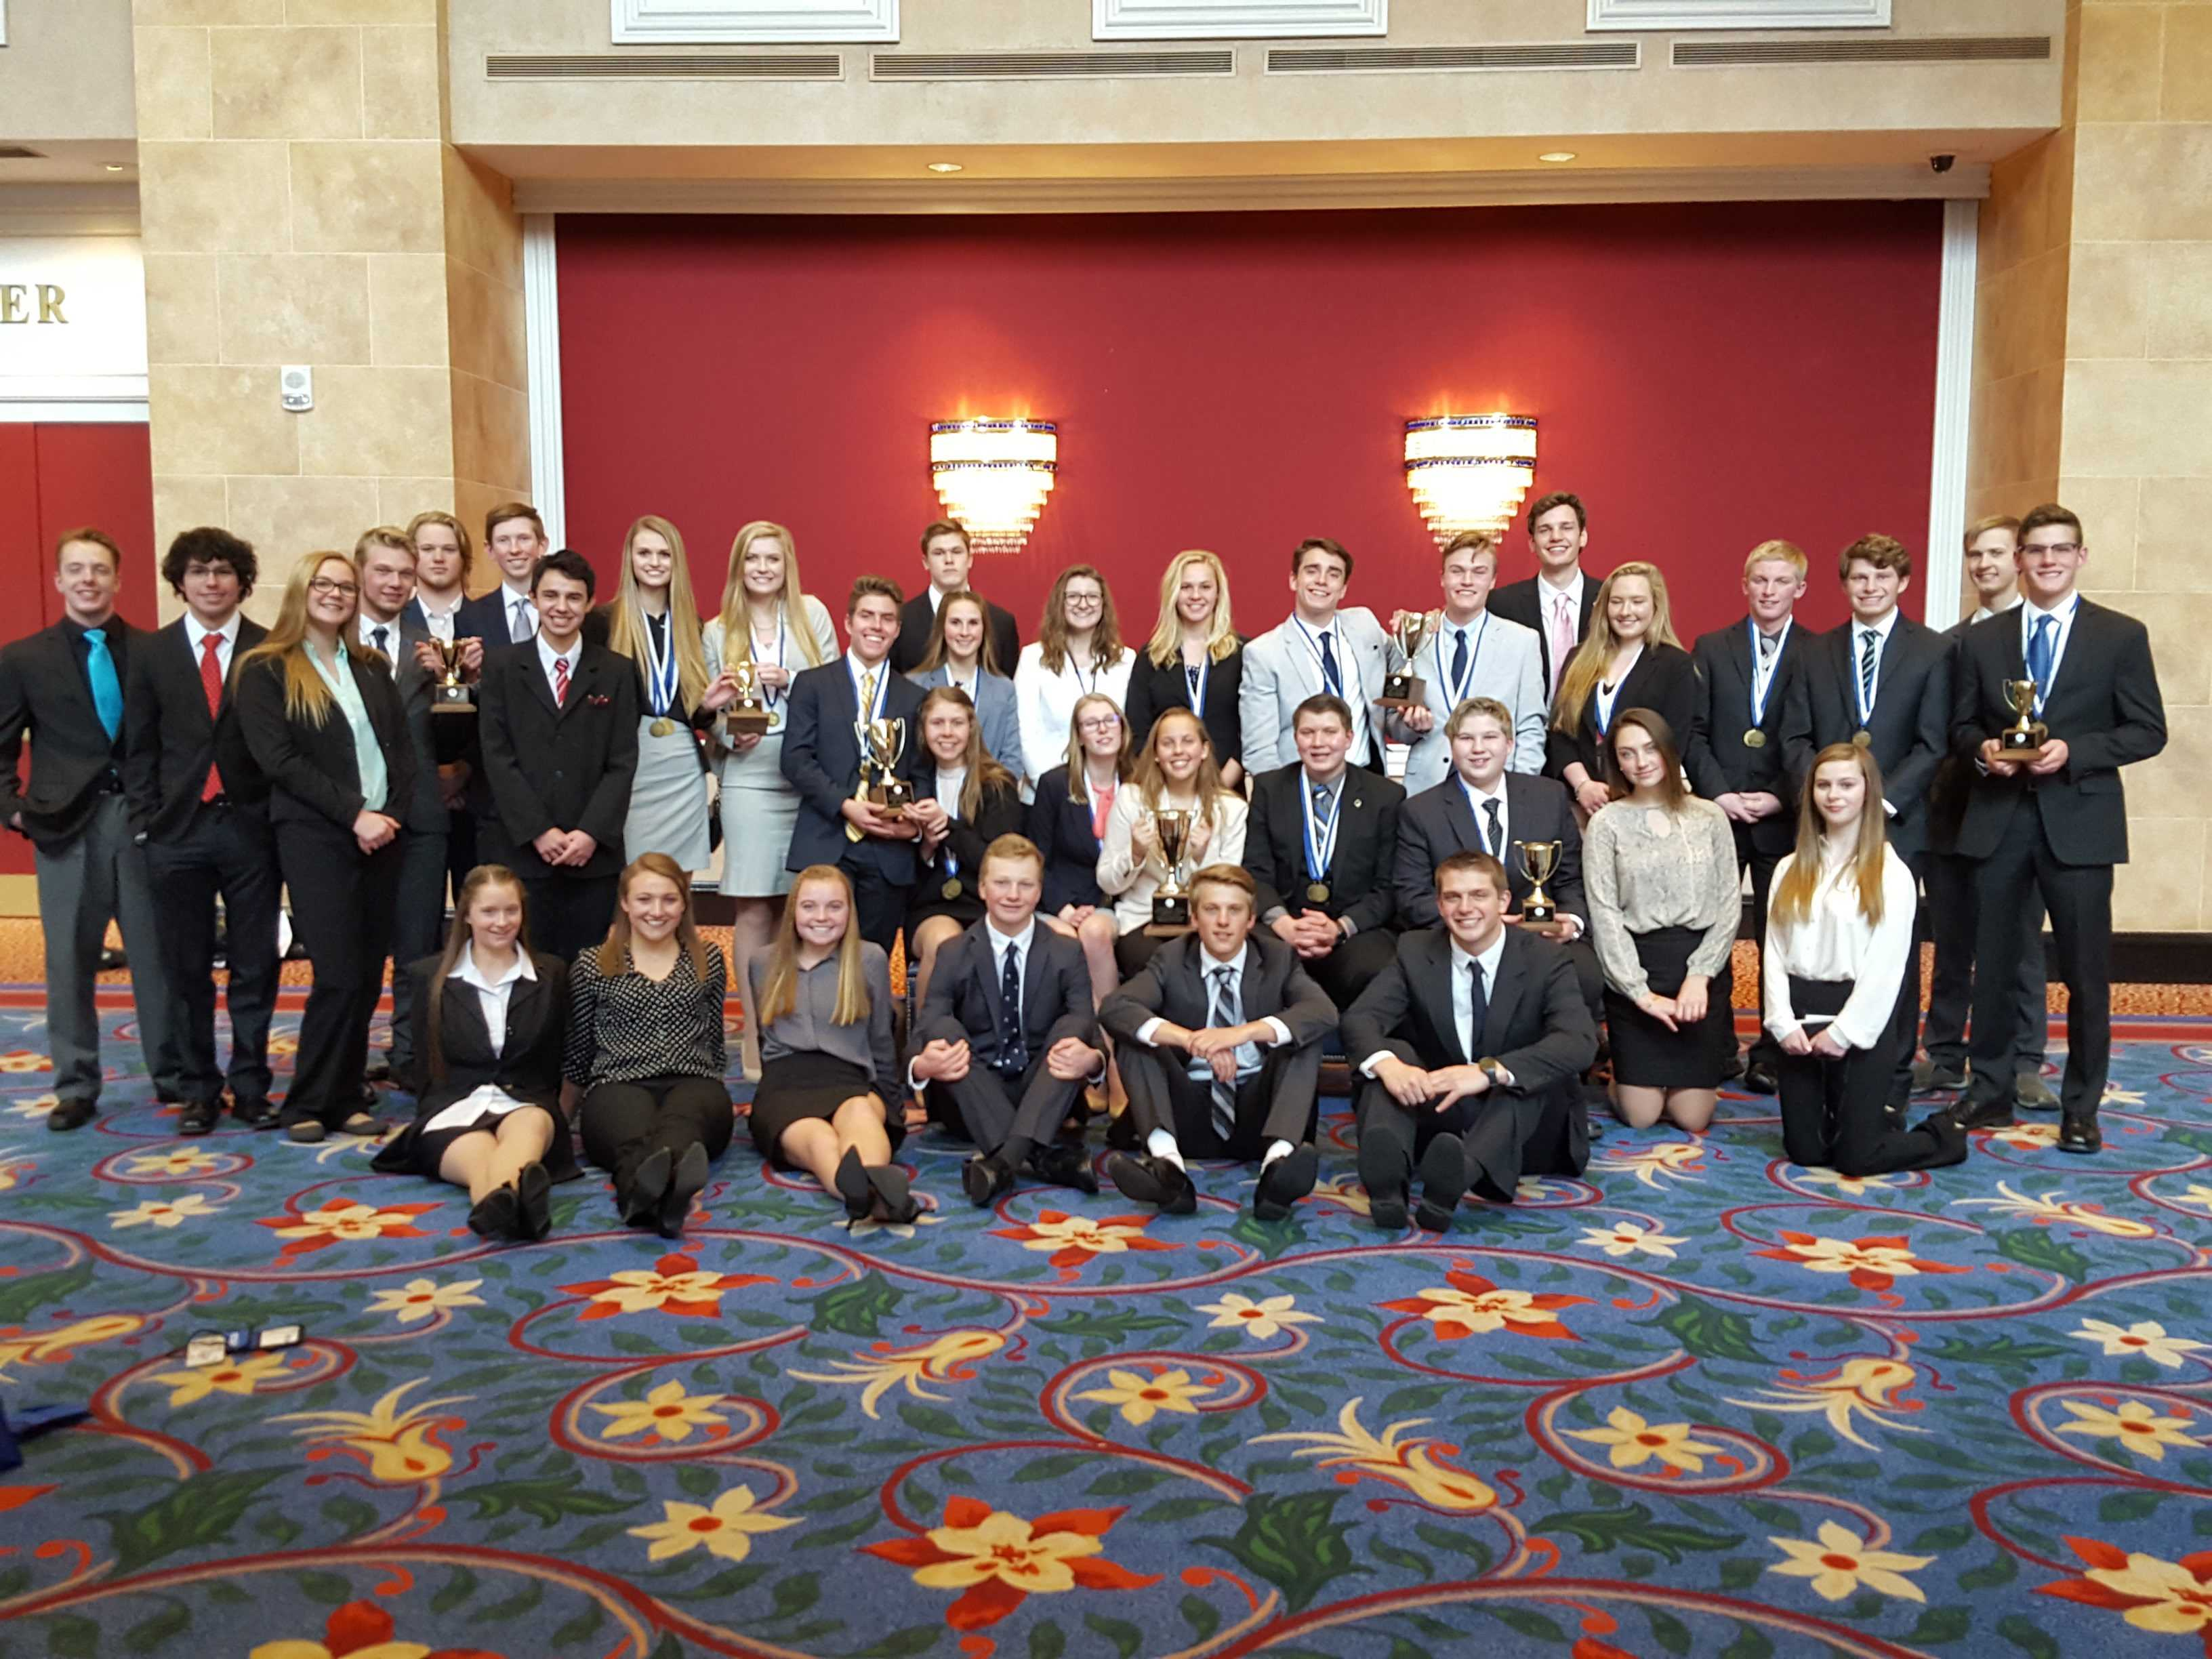 Conifer DECA students gathered at The Broadmoor Hotel in Colorado Springs in late February to compete at the annual State Leadership Conference.  Conifer students were very successful, qualifying 19 students for international competition.